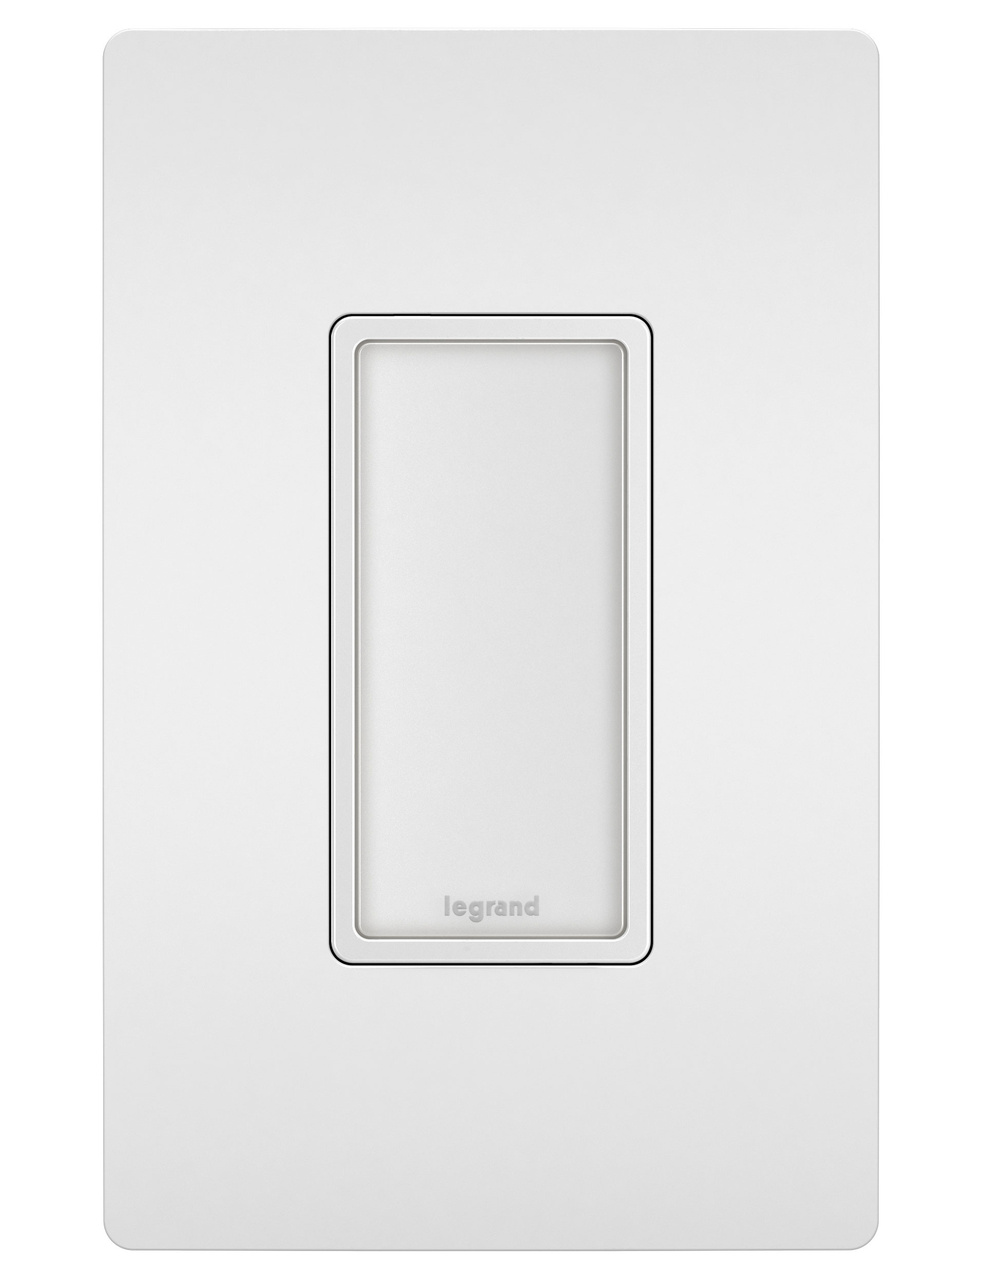 Full Night Light with Adjustable Light Levels, White